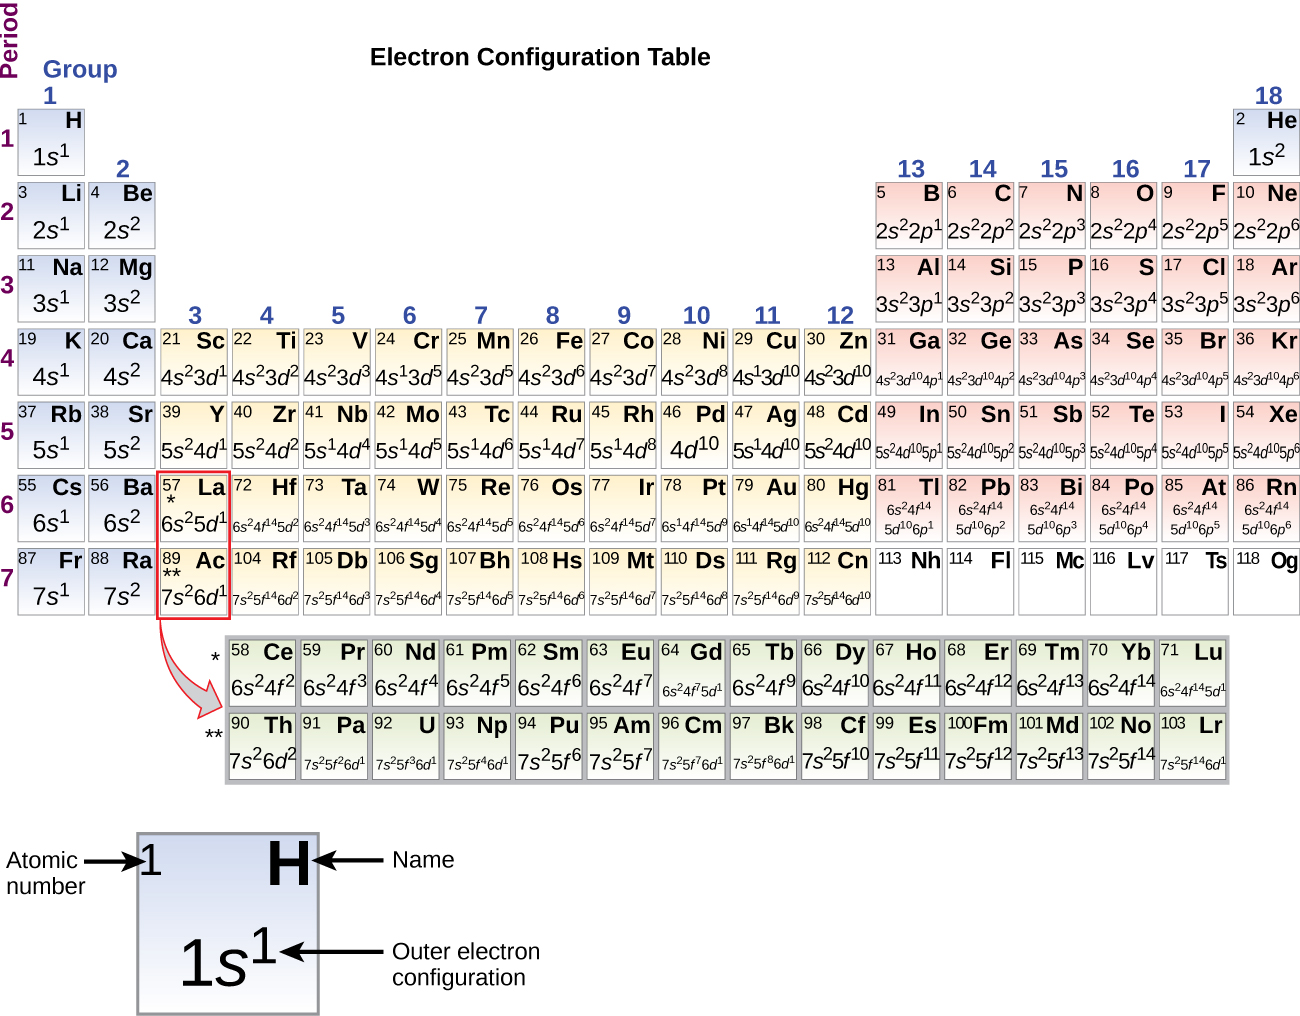 """A periodic table, entitled, """"Electron Configuration Table"""" is shown. The table includes the outer electron configuration information, atomic numbers, and element symbols for all elements. A square for the element hydrogen is pulled out beneath the table to provide detail. The blue shaded square includes the atomic number in the upper left corner, which is 1; the element symbol, H, in the upper right corner; and the outer electron configuration in the lower, central portion of the square. For H, this is 1s superscript 1."""